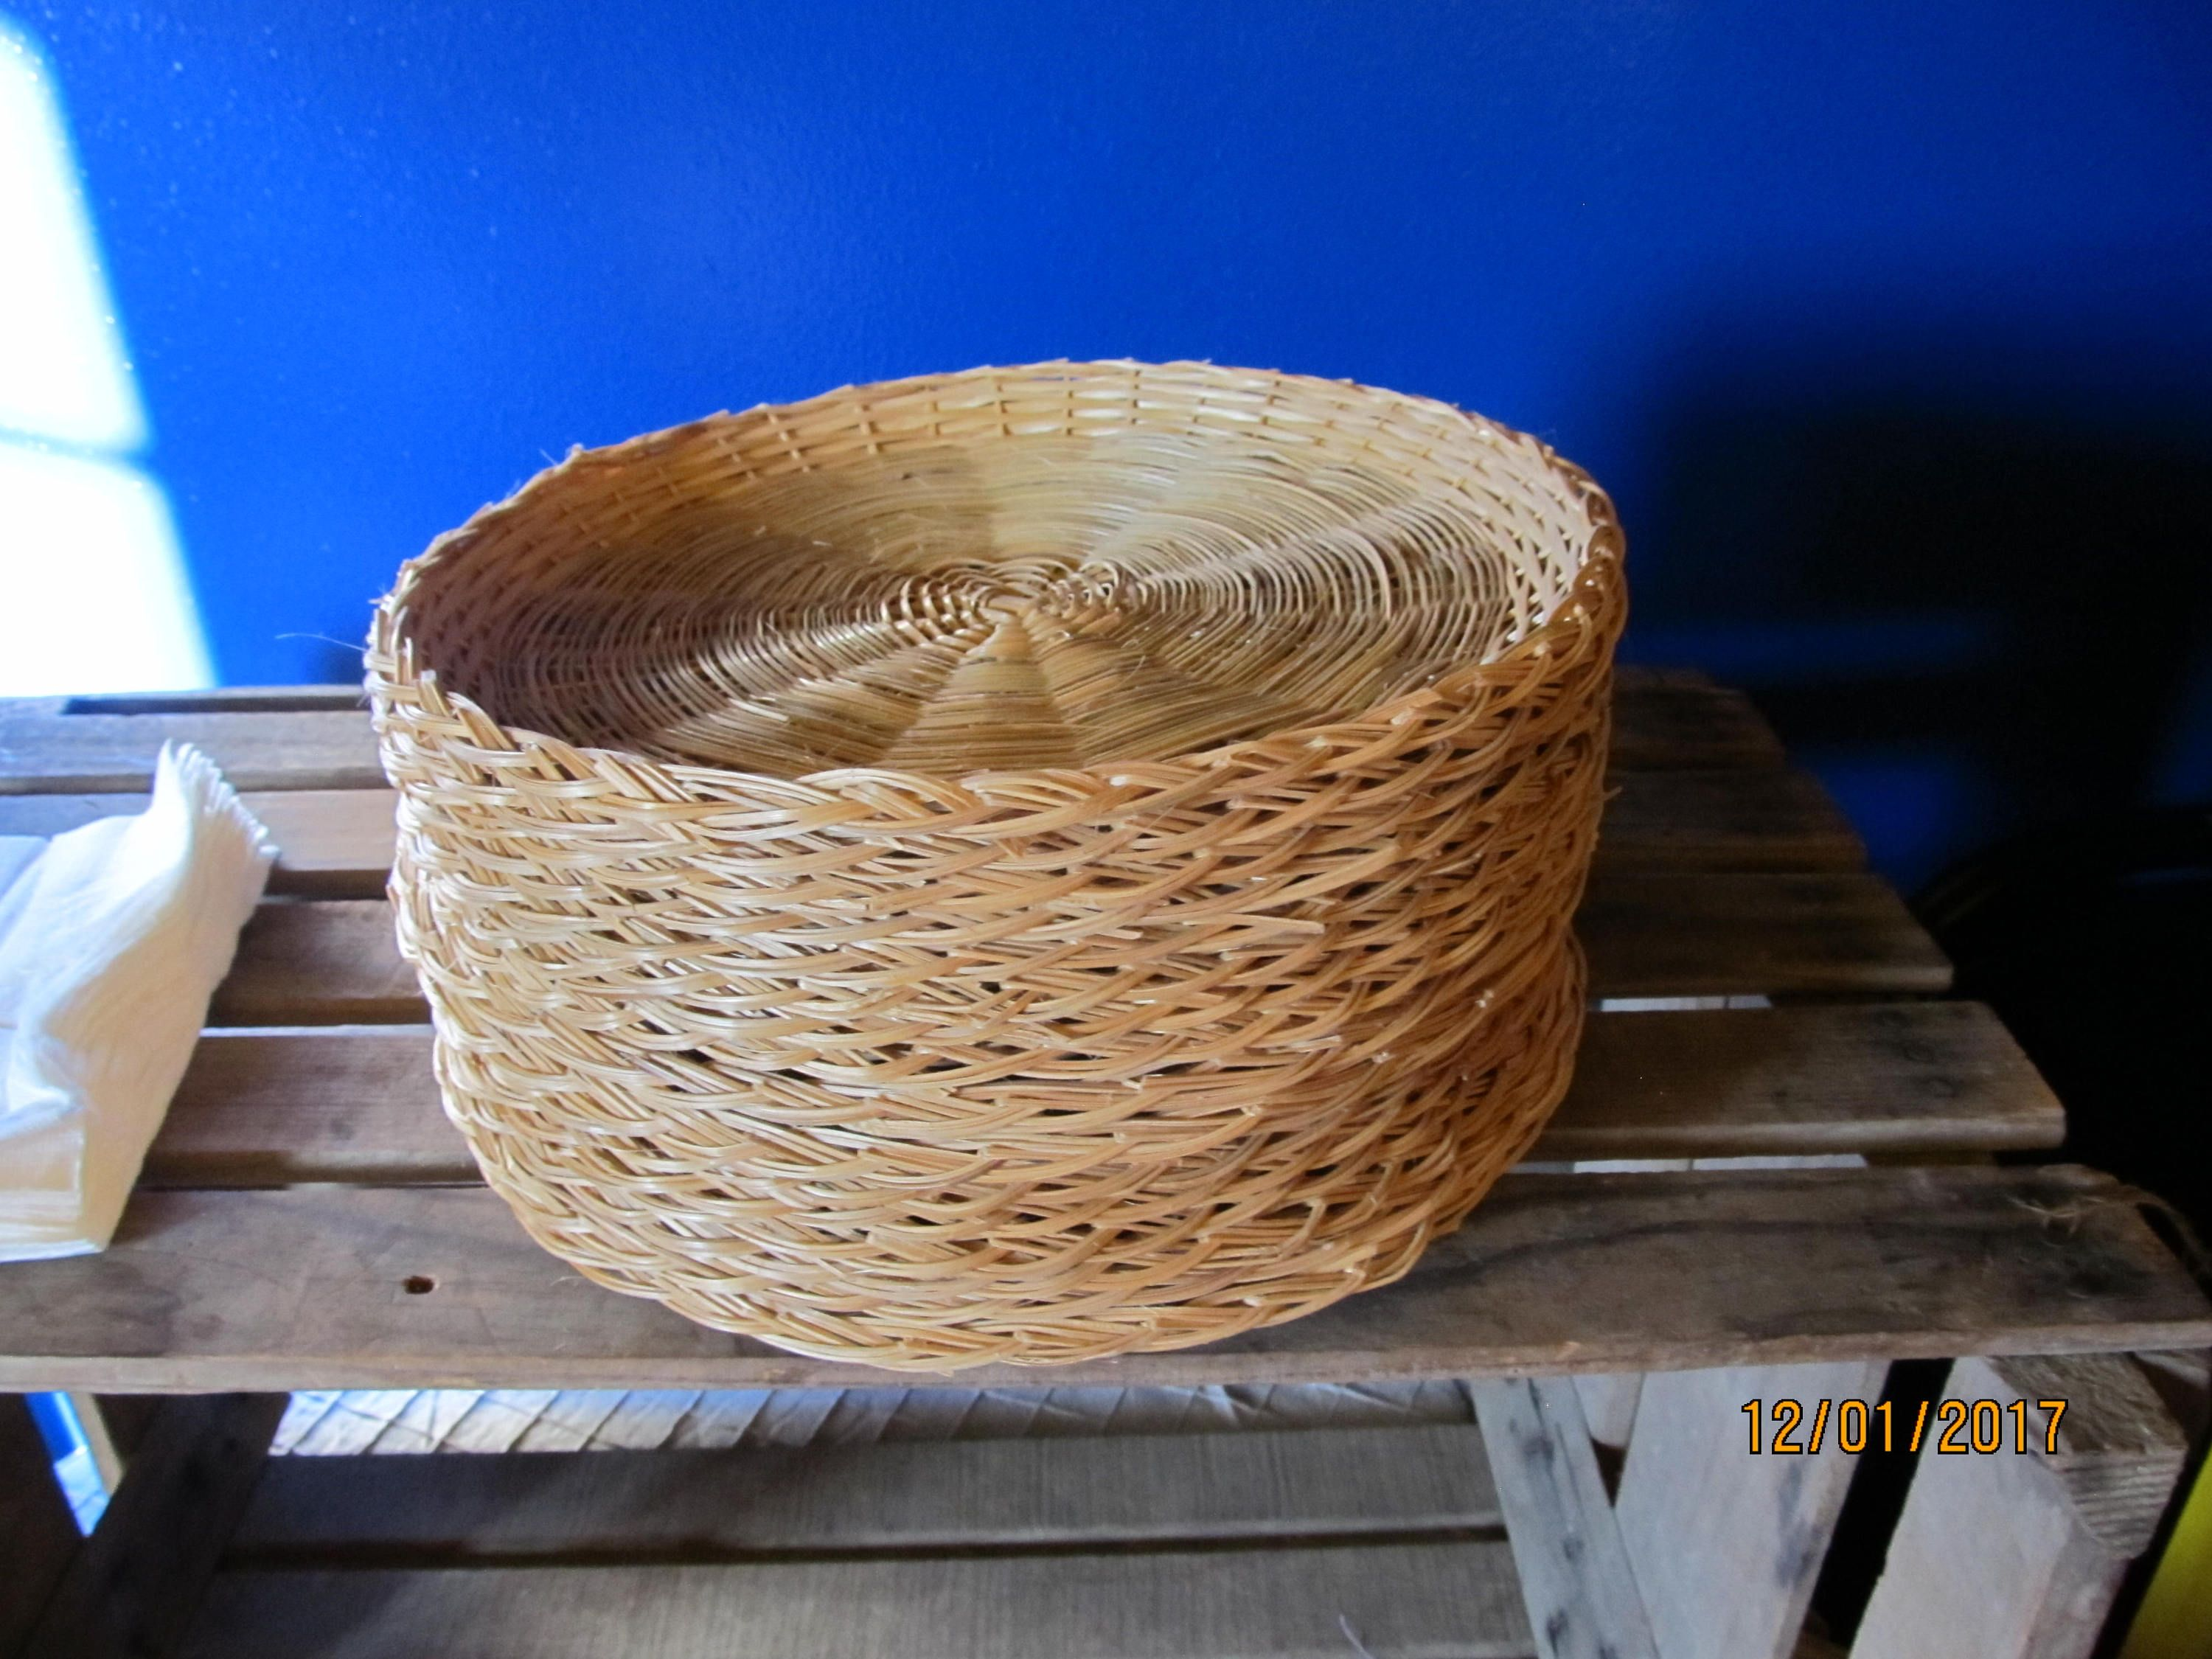 Set of 16 Mint Condition Wicker Straw Rattan Paper Plate Holders 9 1/2  & Set of 16 Mint Condition Wicker Straw Rattan Paper Plate Holders 9 1 ...